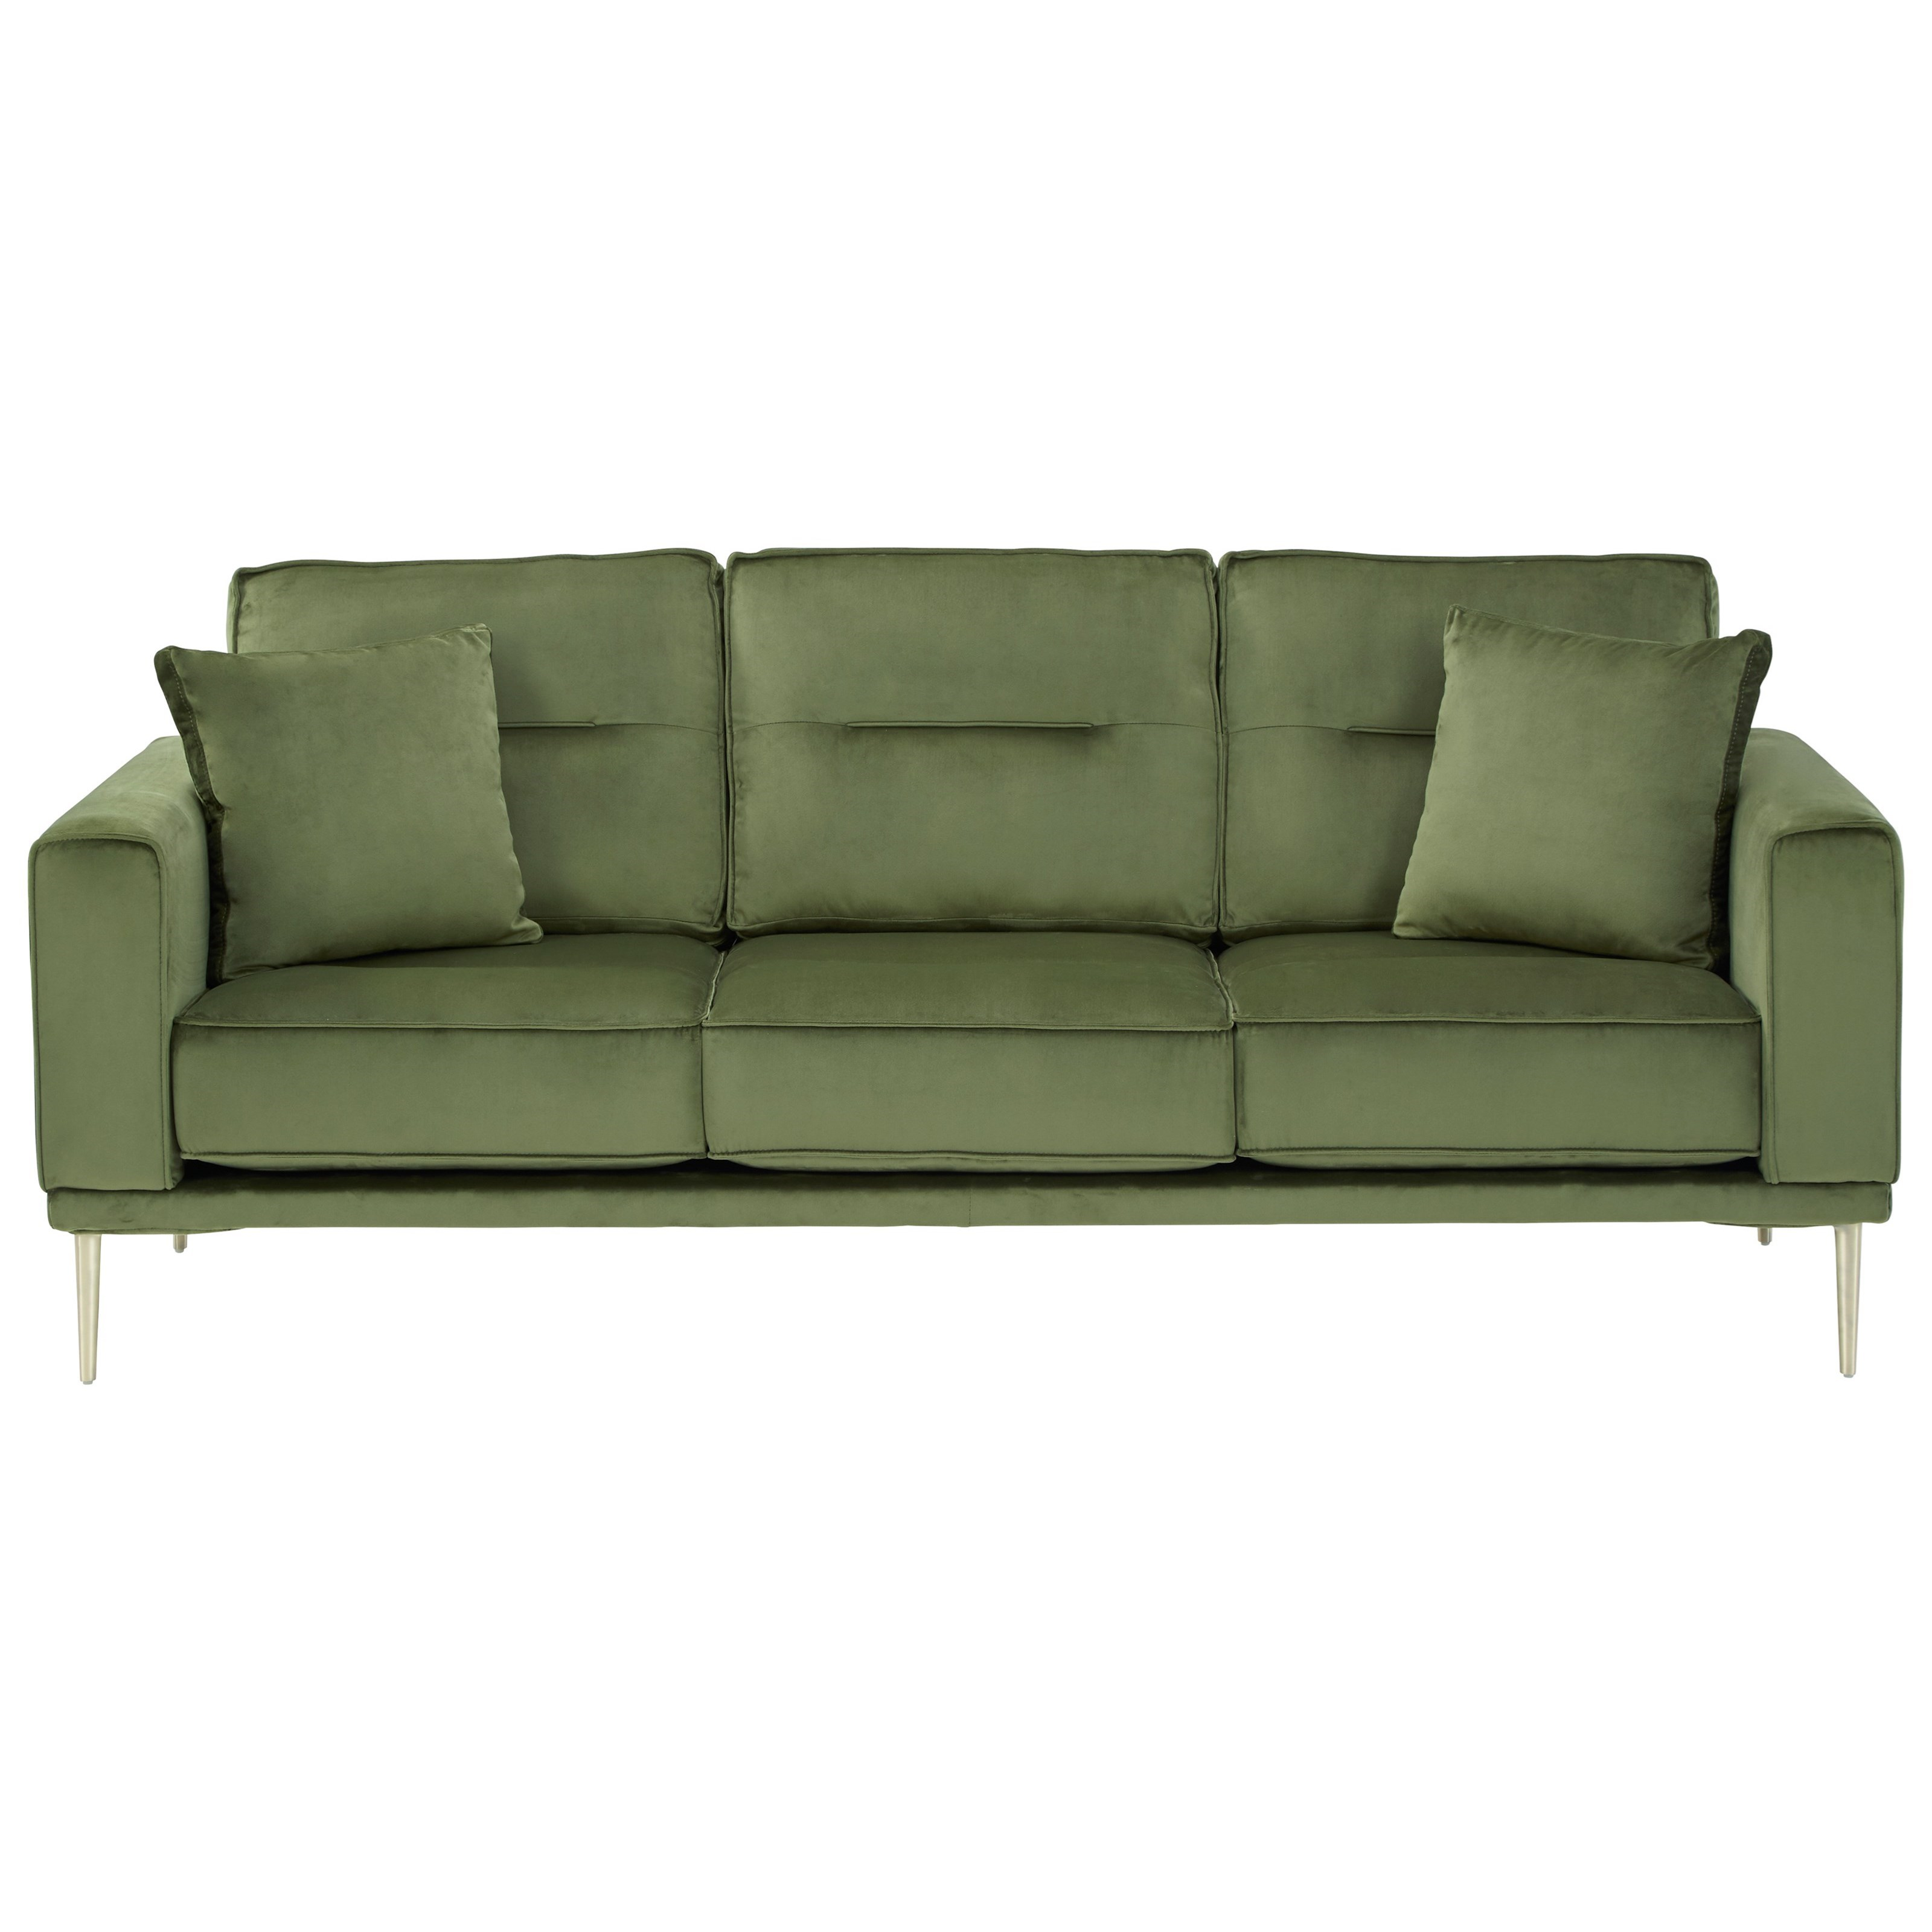 Macleary Sofa by Signature Design by Ashley at Beck's Furniture